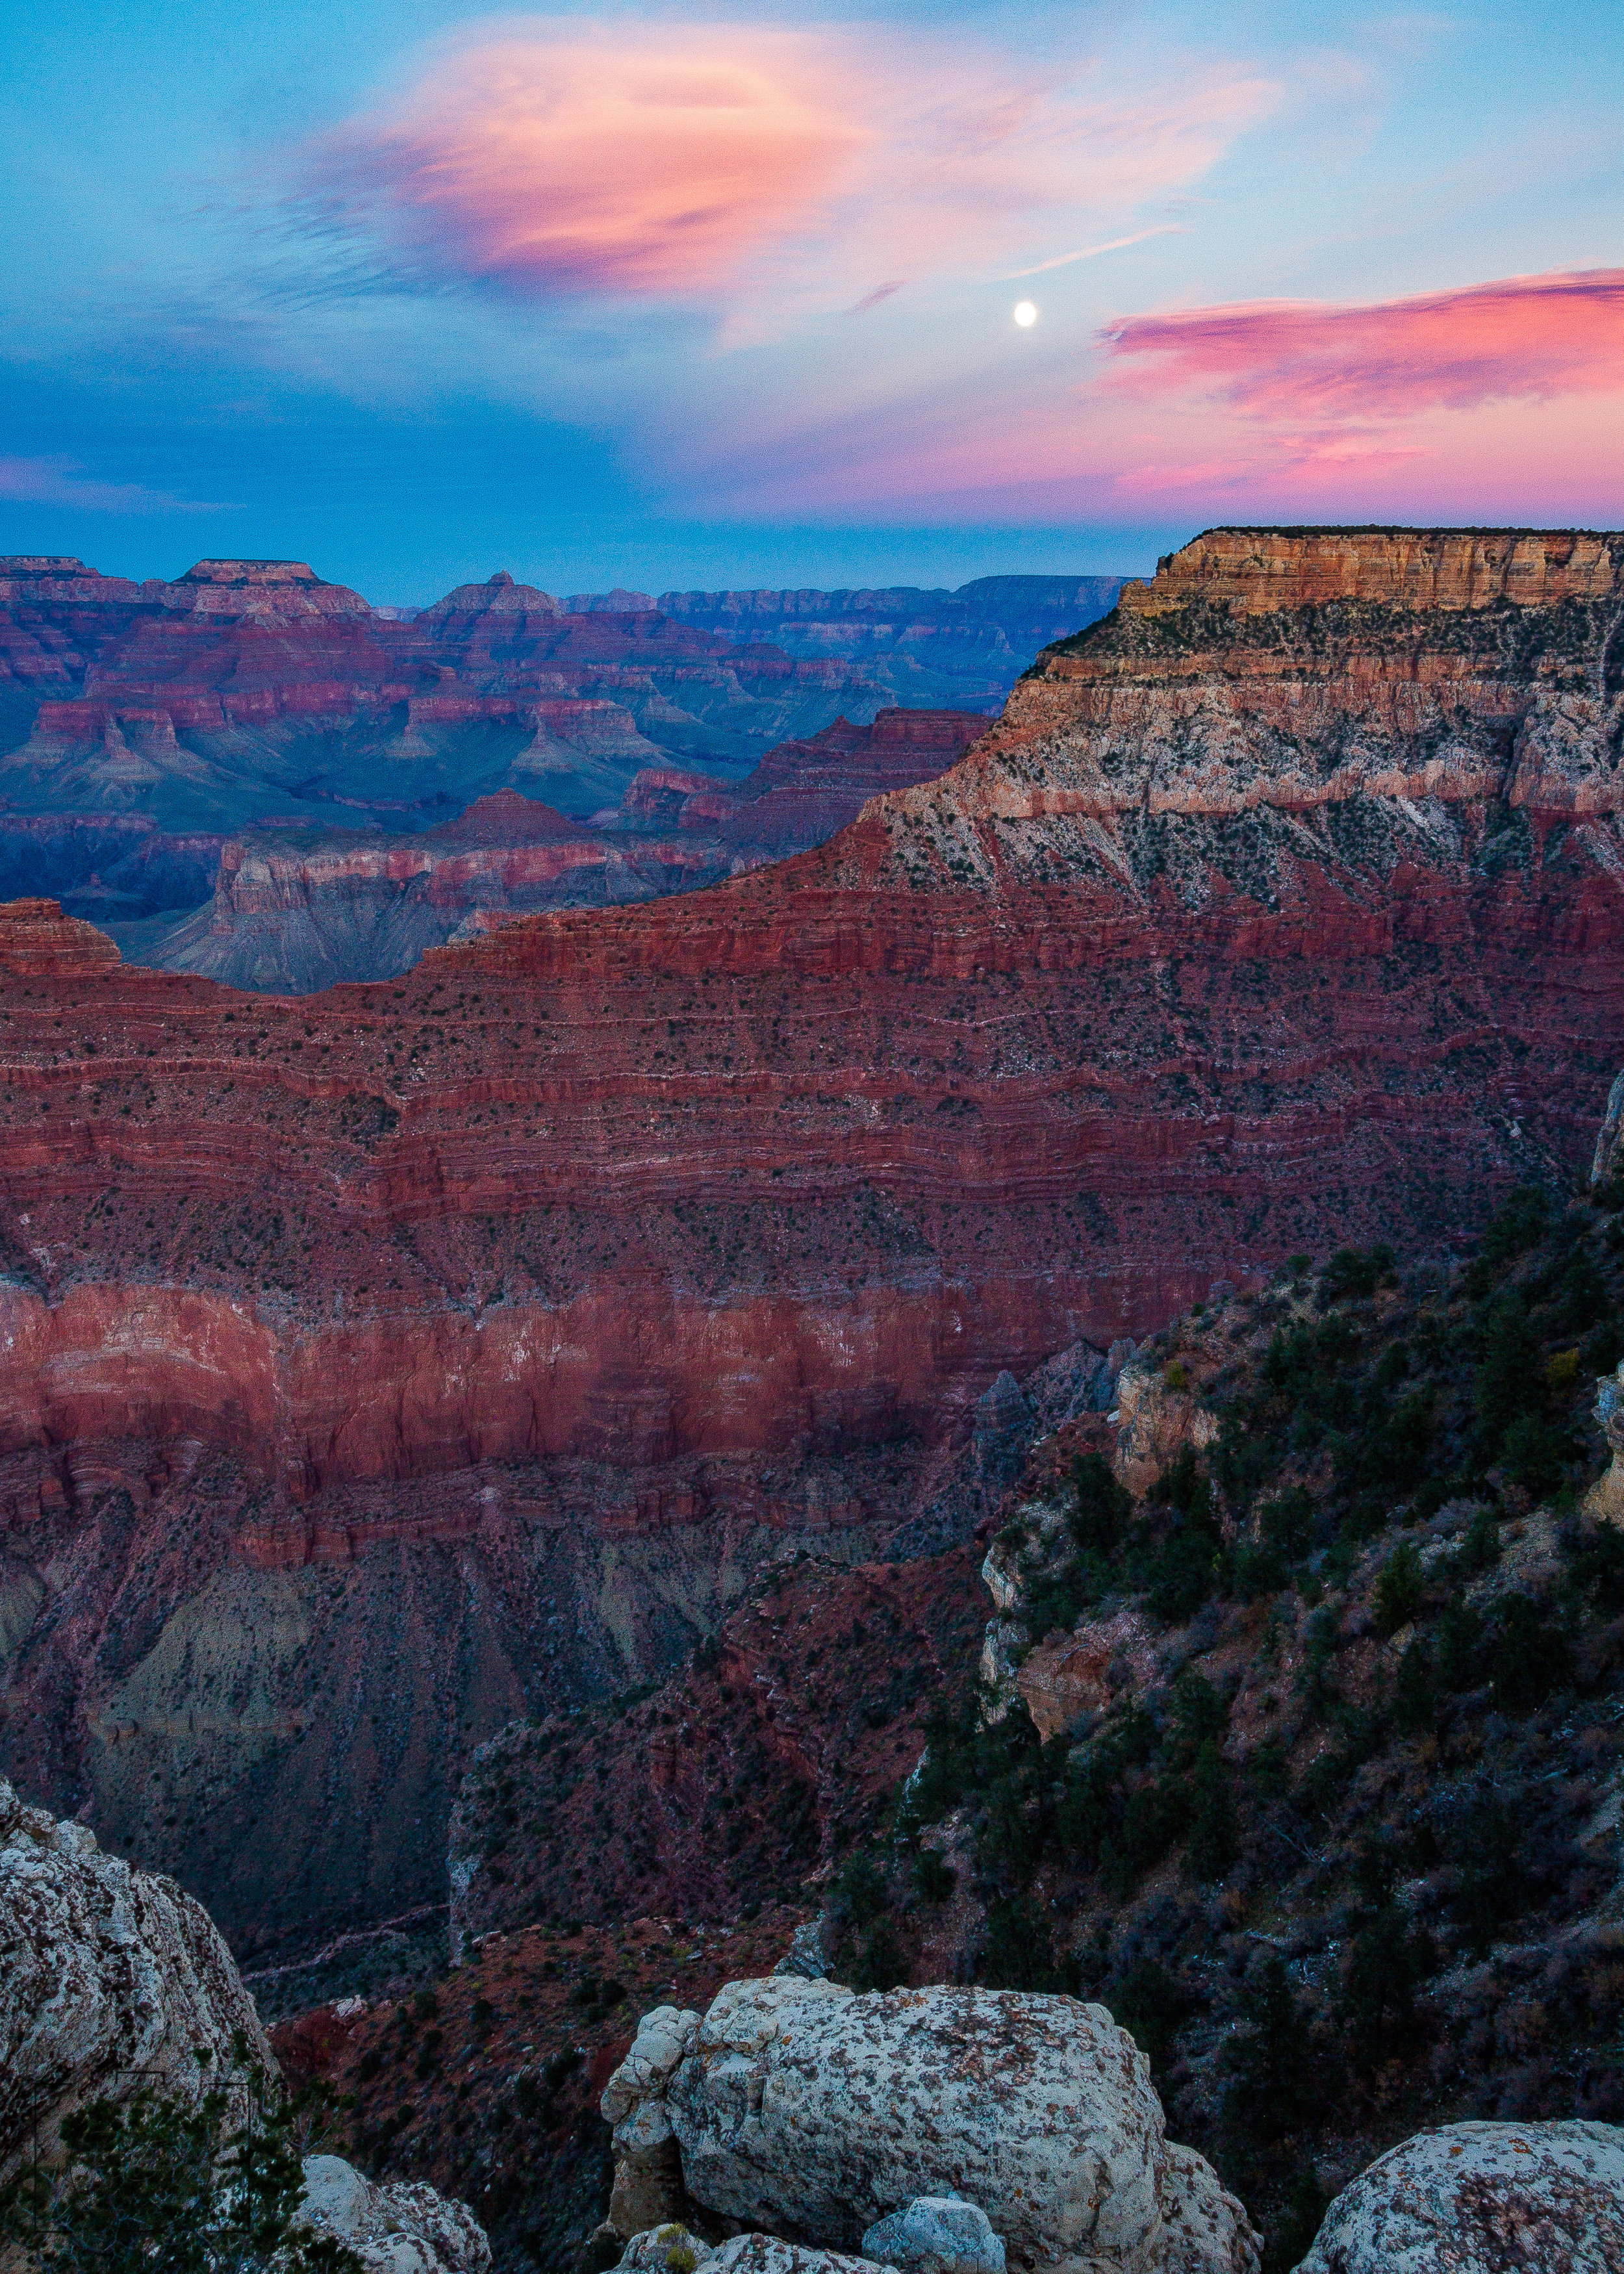 Moonrise over the Grand Canyon - Mather Point, South Rim